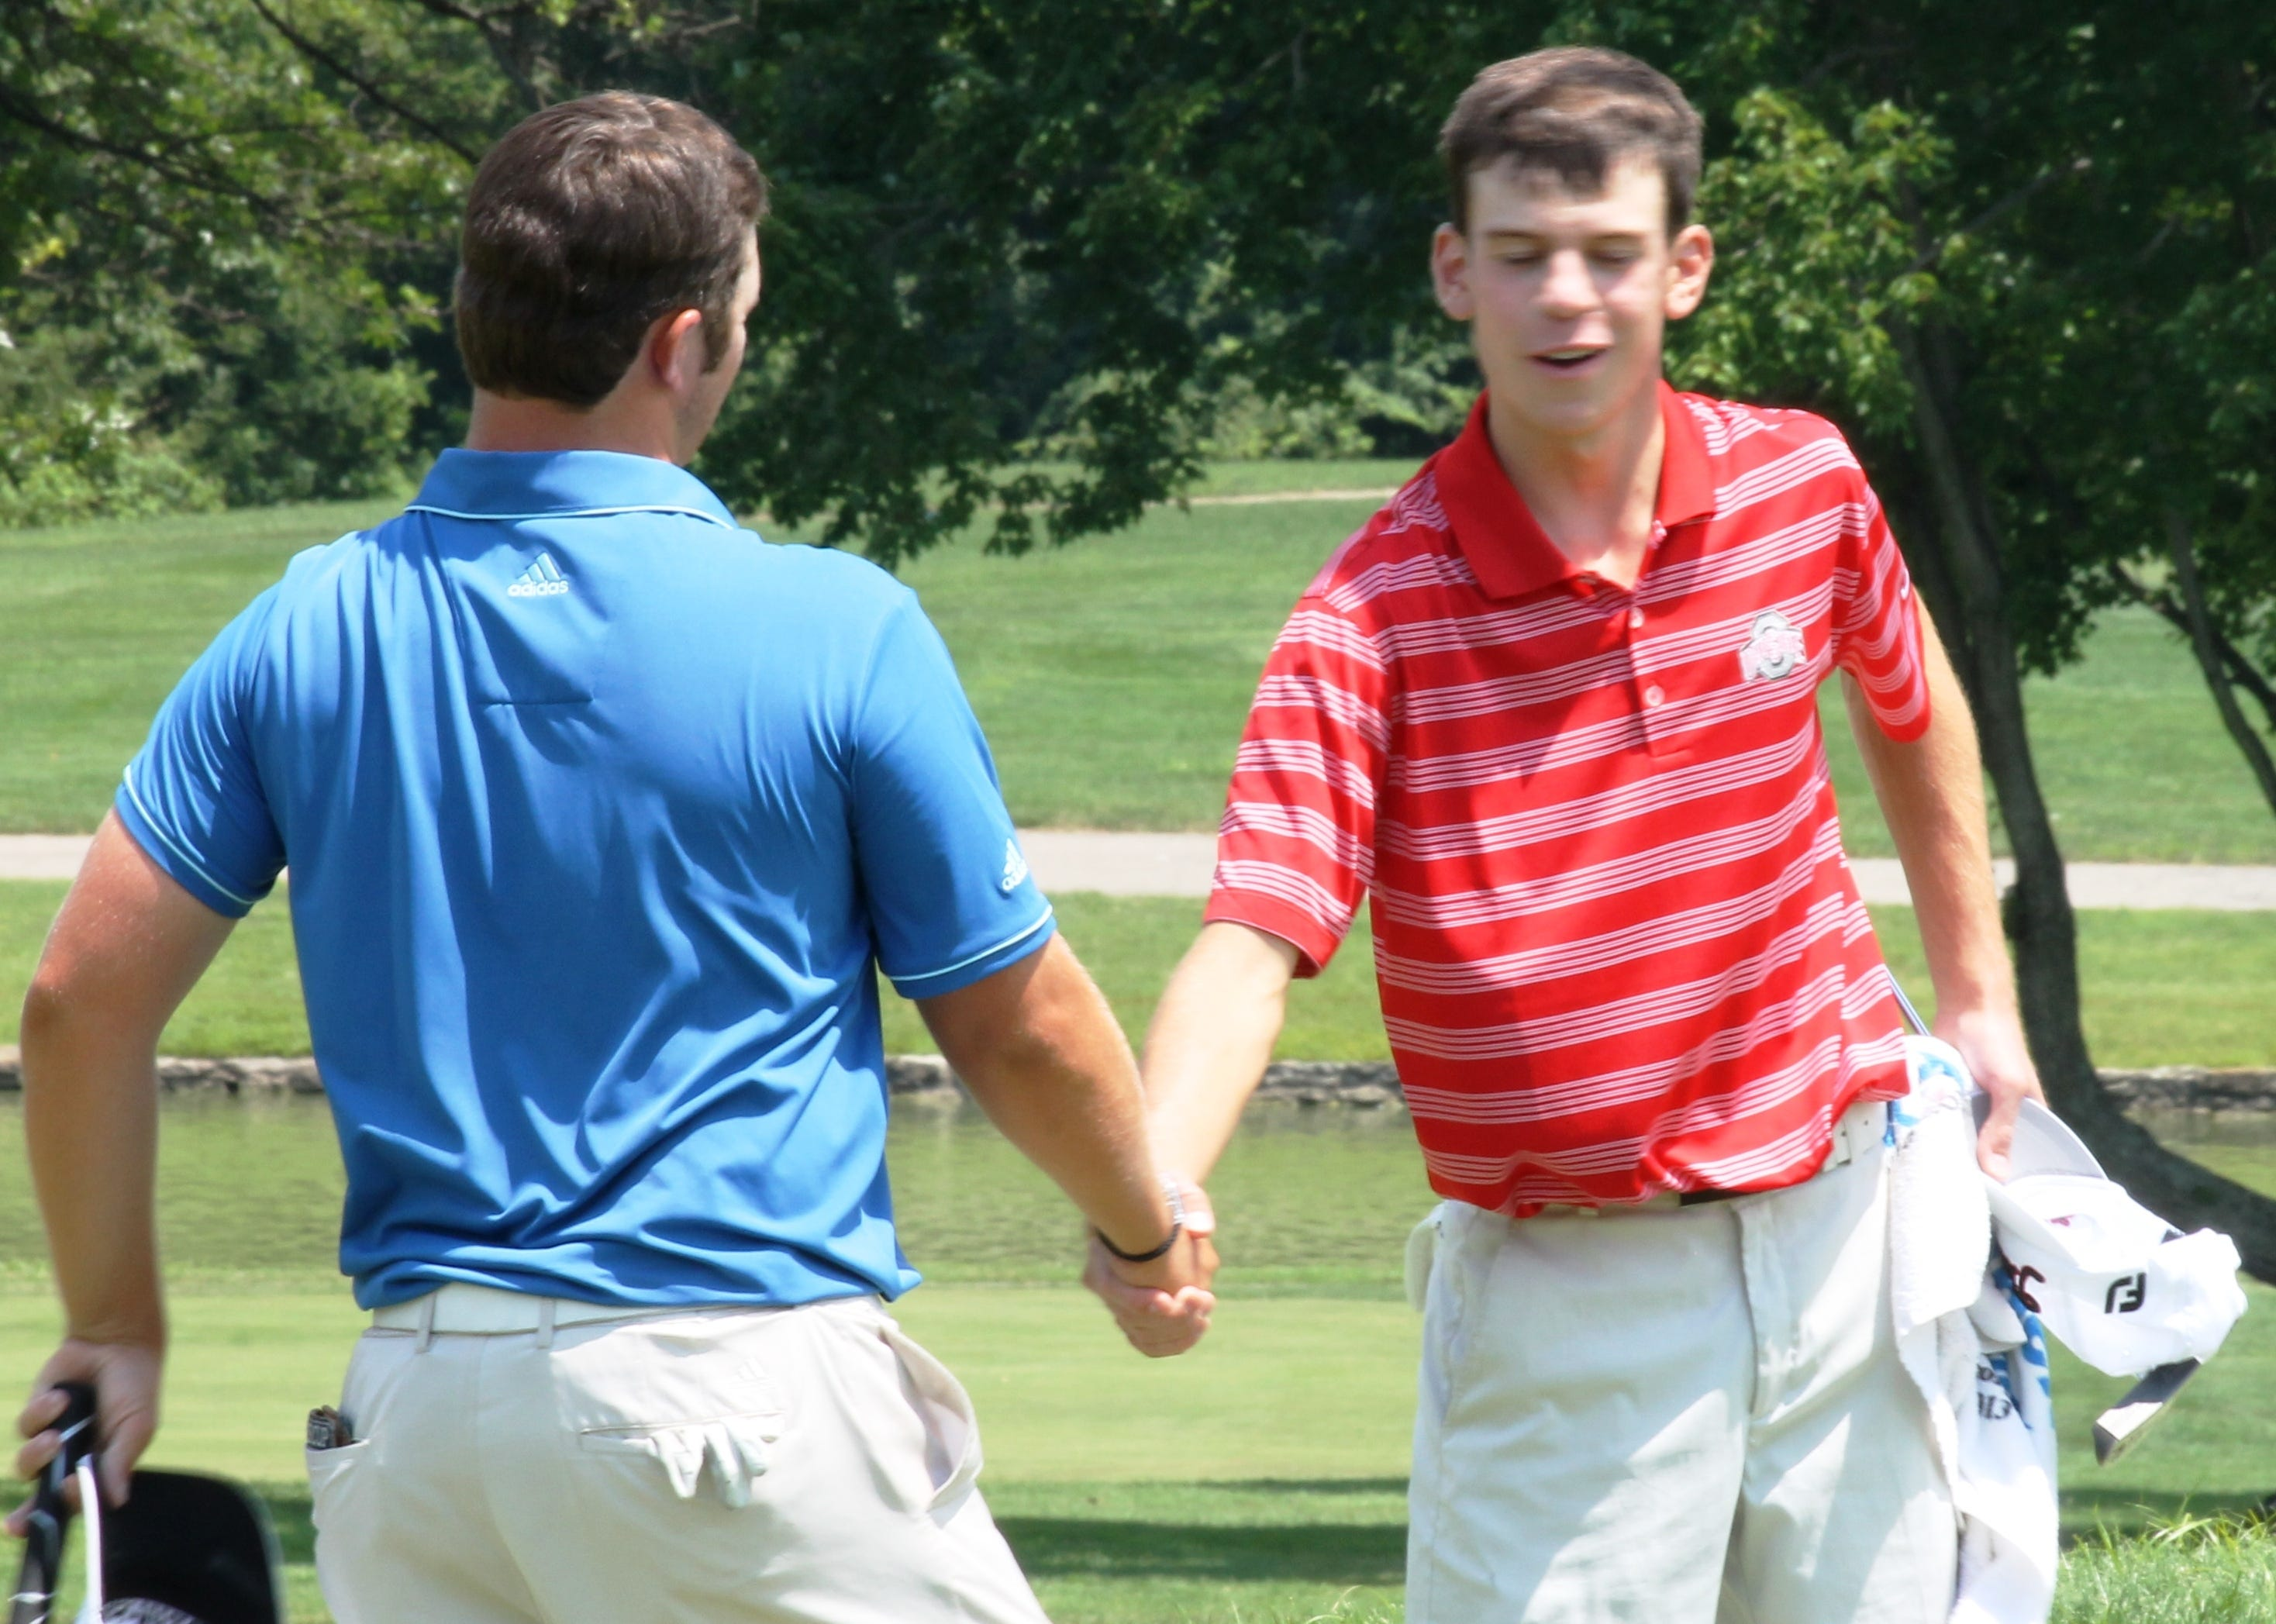 Ohio Amateur golf champion Andrew Dorn, left, shakes hands with runner-up Will Grimmer July 11 on the 18th green at Coldstream Country Club. Dorn needed a closing round of 66, five under par, to edge Grimmer 276-277 by one stroke in the four-day tournament.